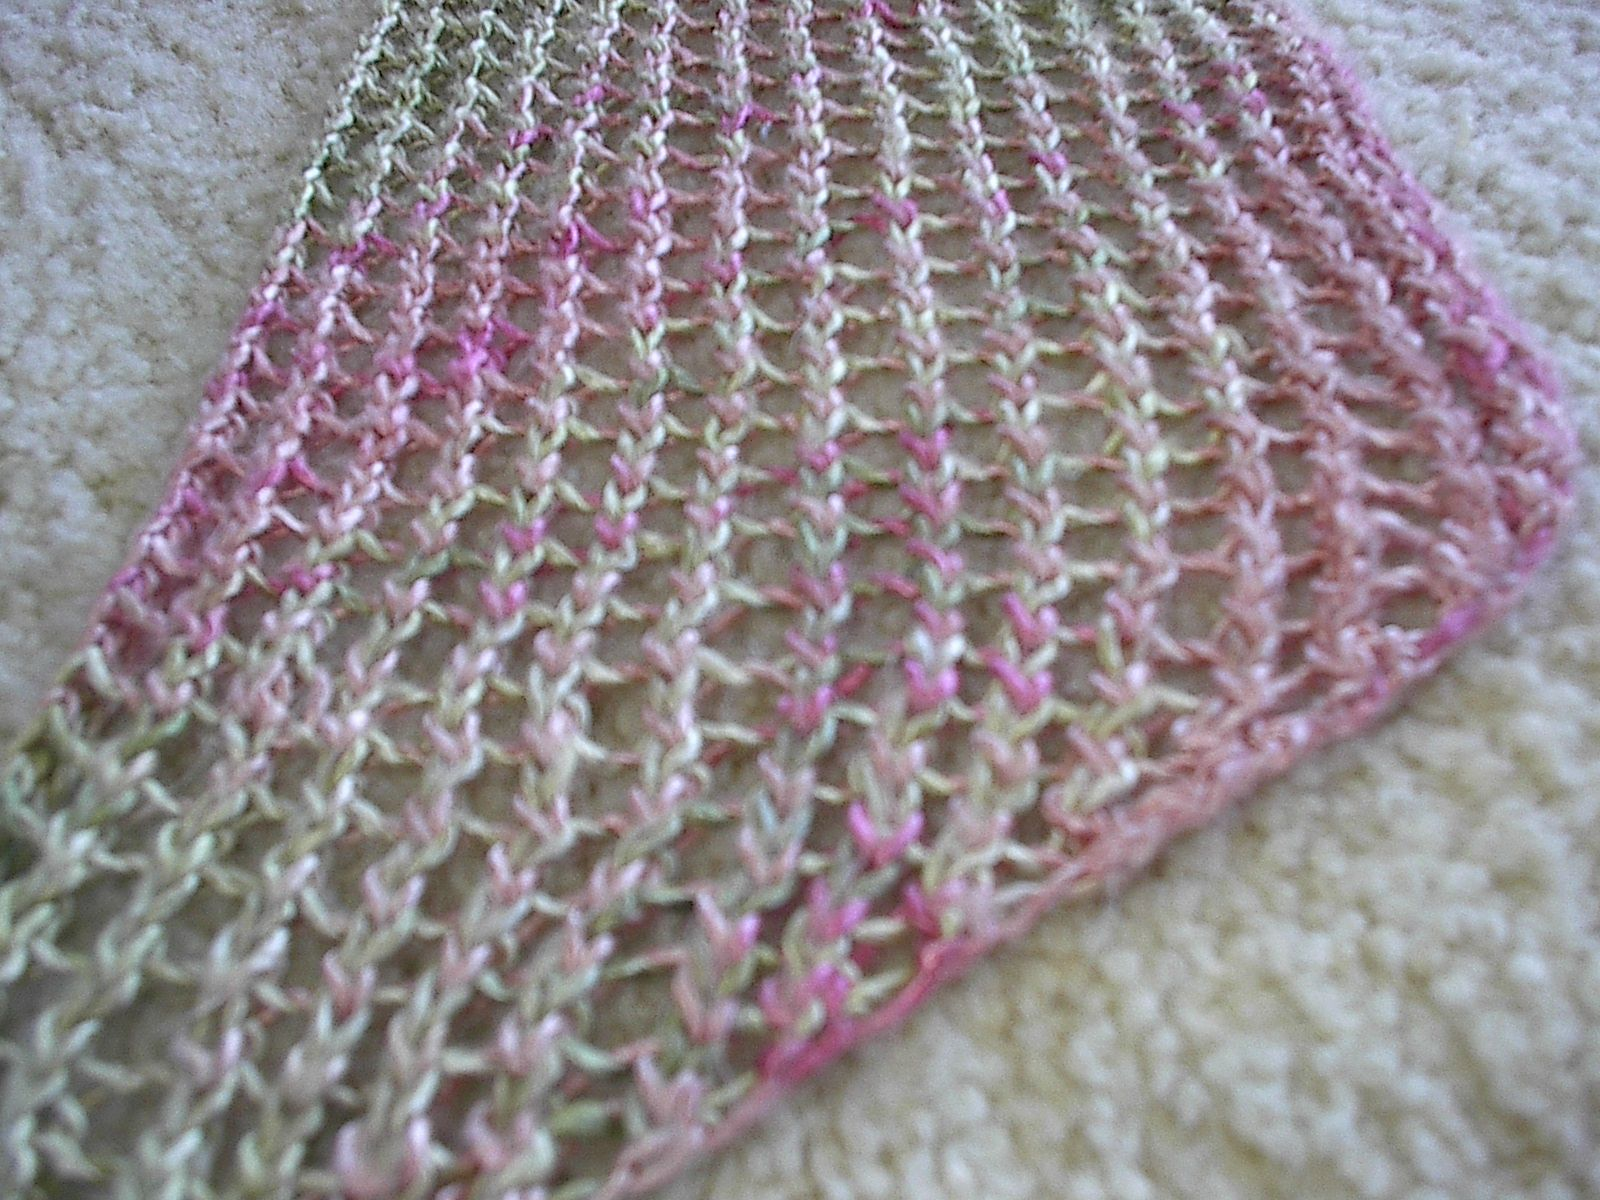 Easy Lace Scarf Knitting Pattern : Easy Lace Knit Shawl/Scarf Knitting Pinterest